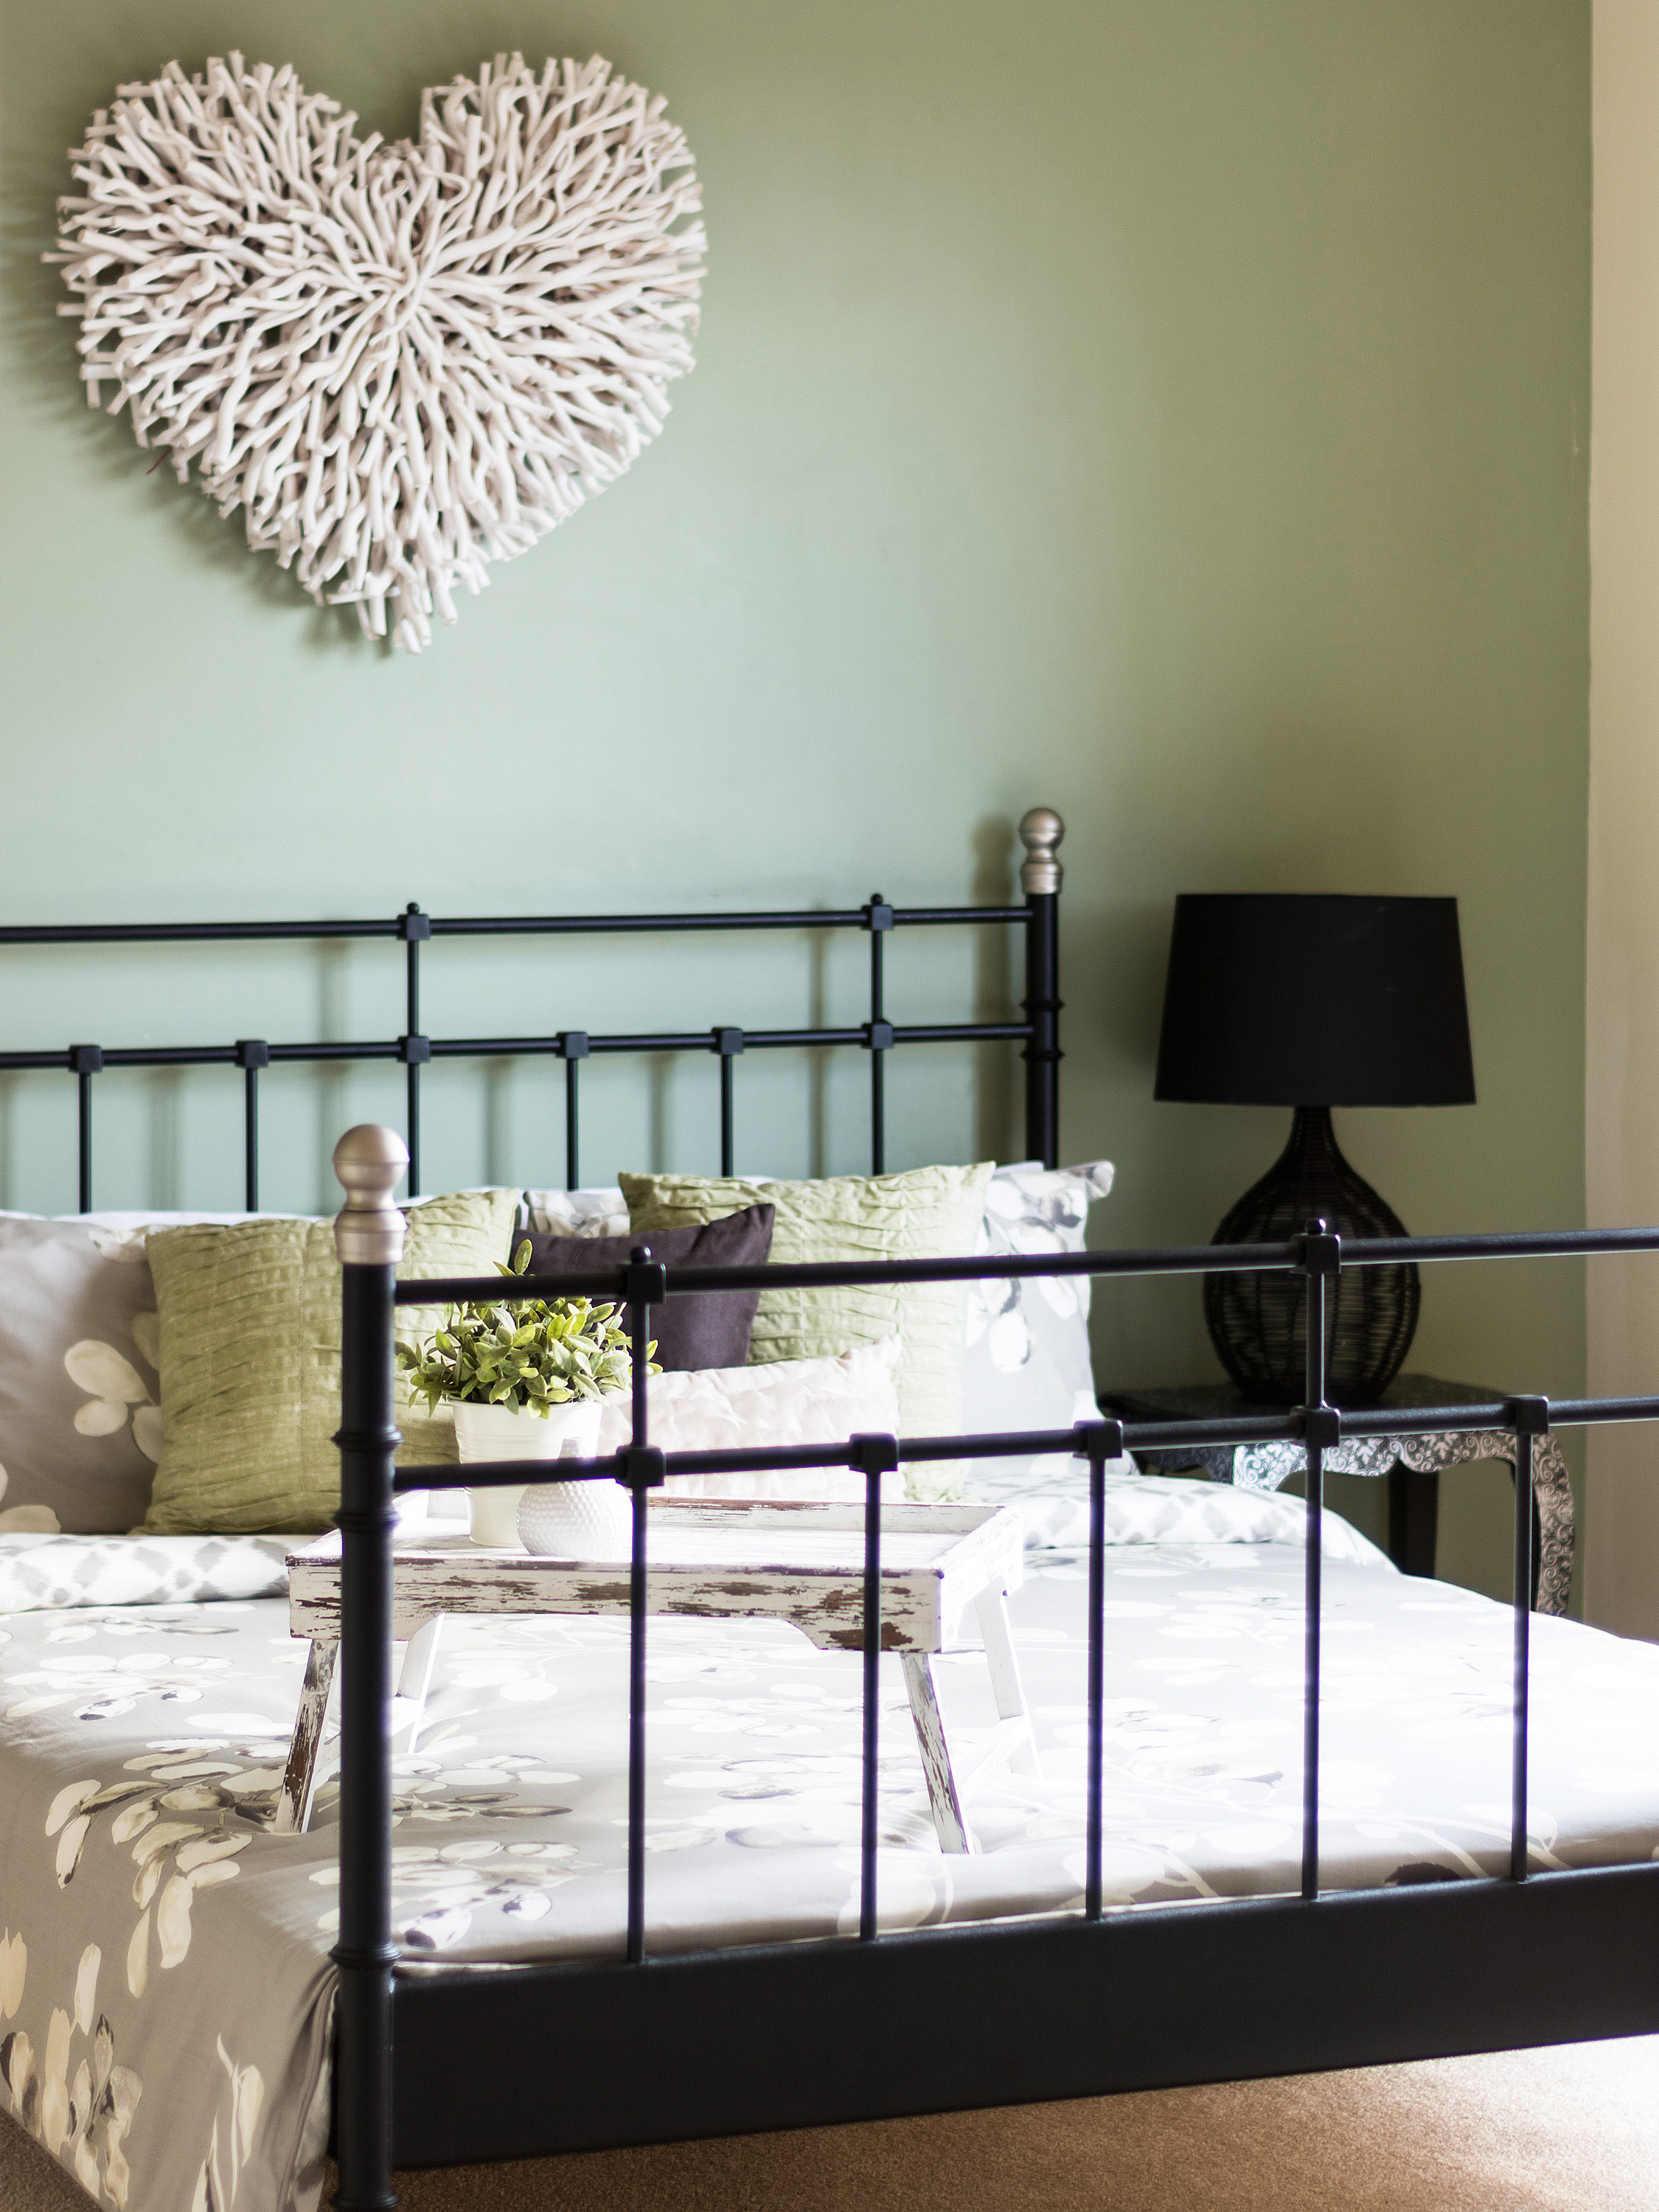 402380-014 Bed 1